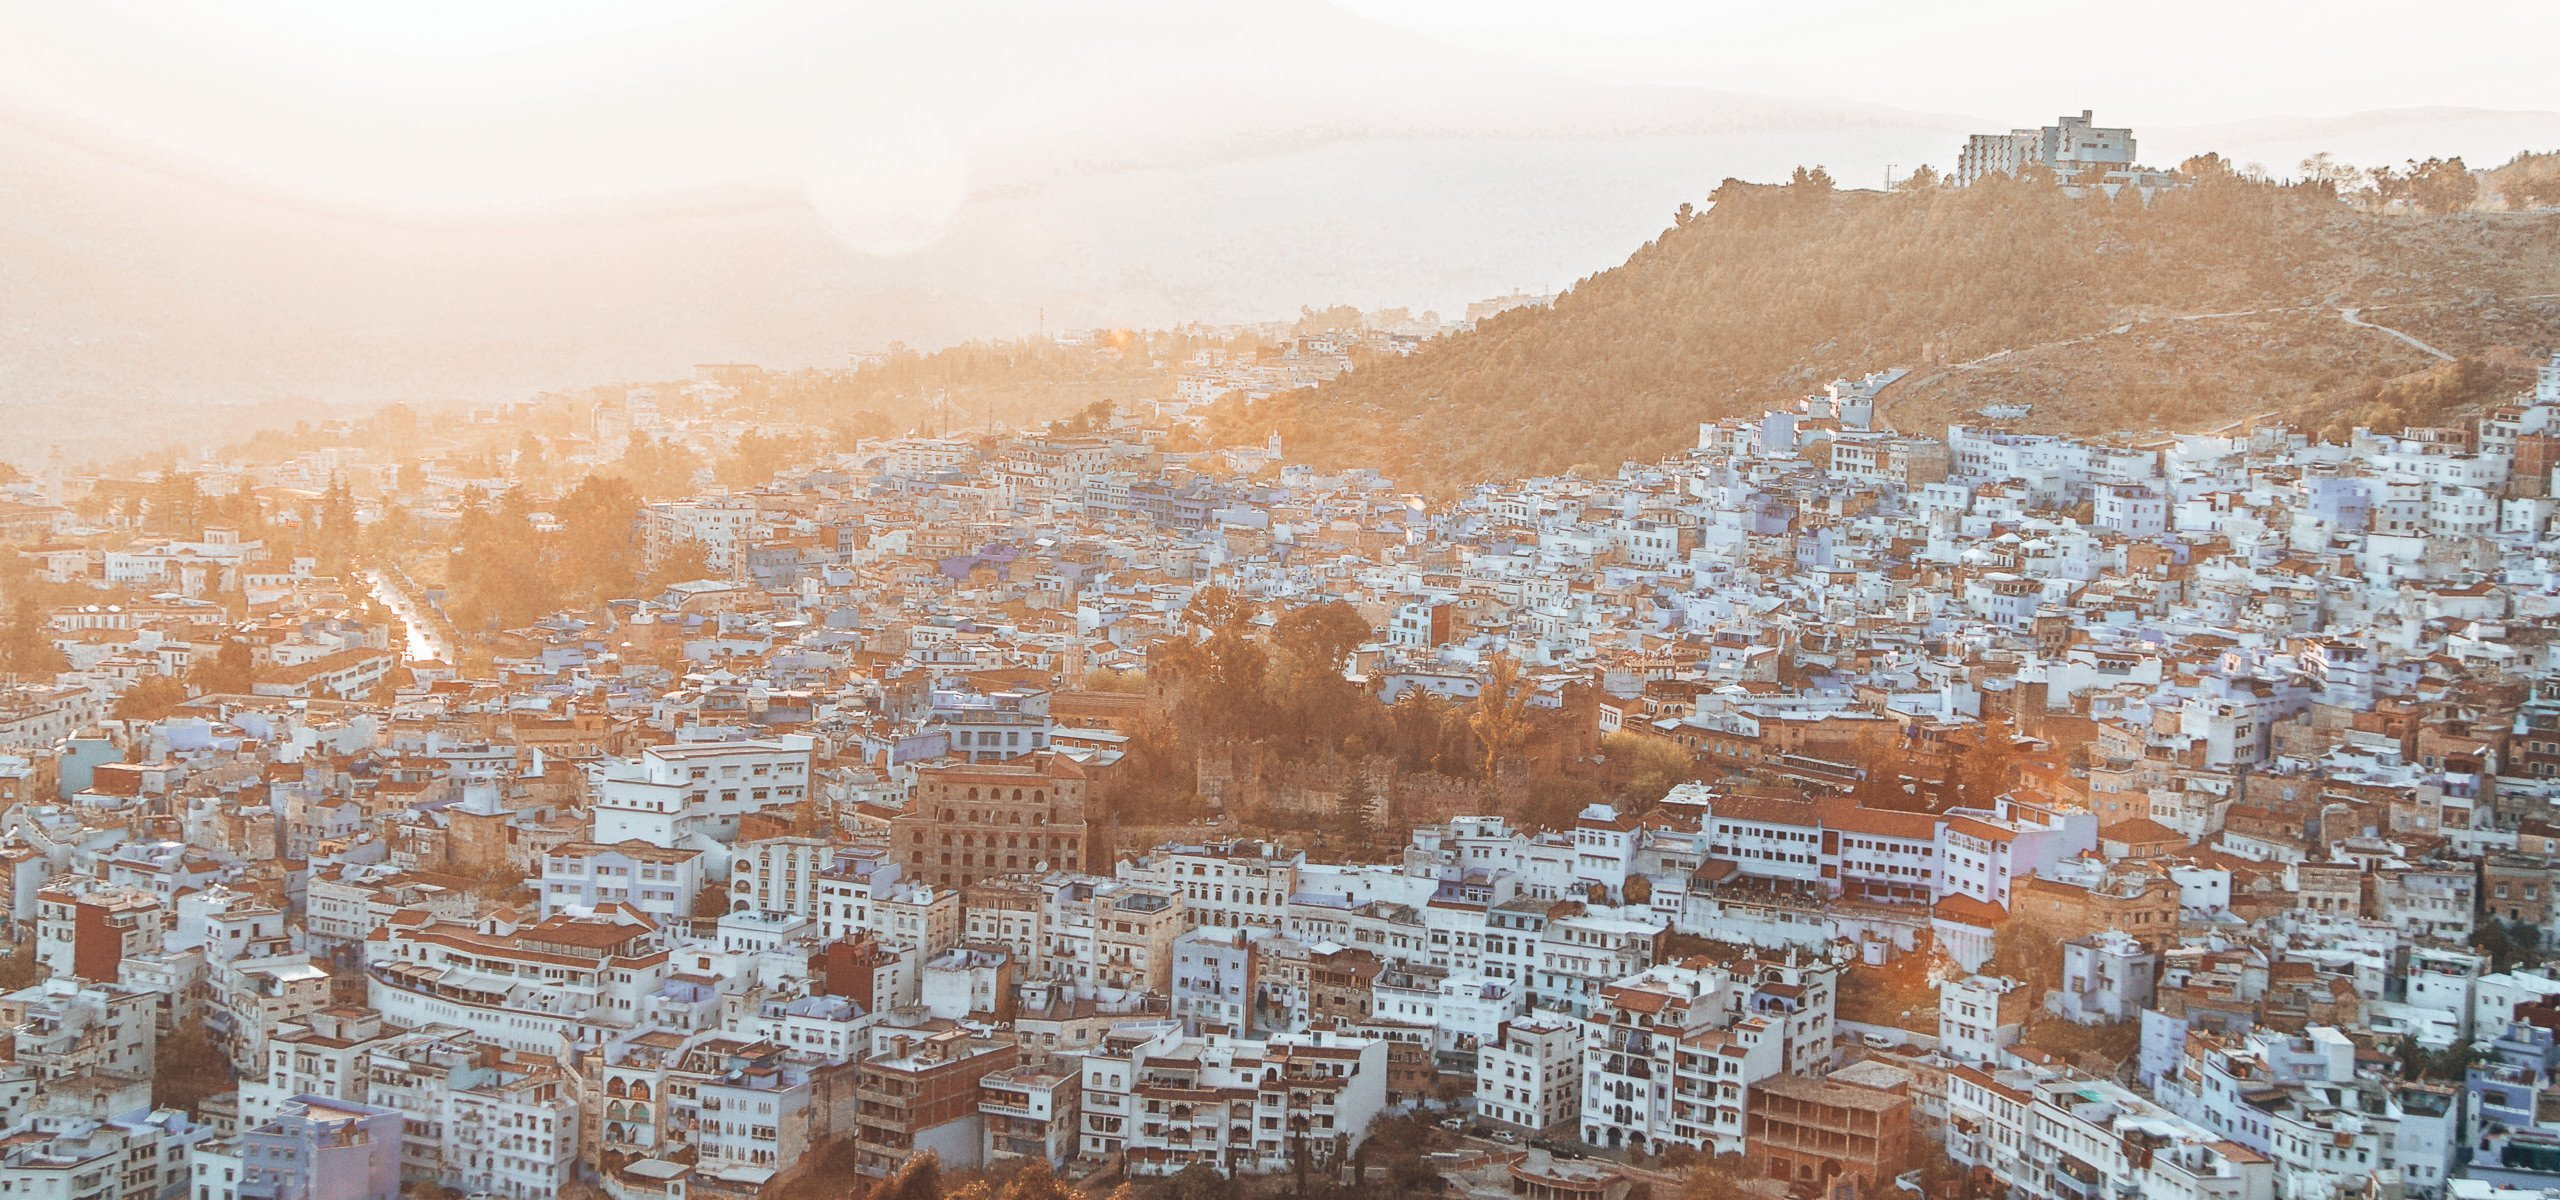 How many days in Chefchaouen | The sun sets over Chefchaouen, lighting up the blue city with a soft golden glow, Chefchaouen